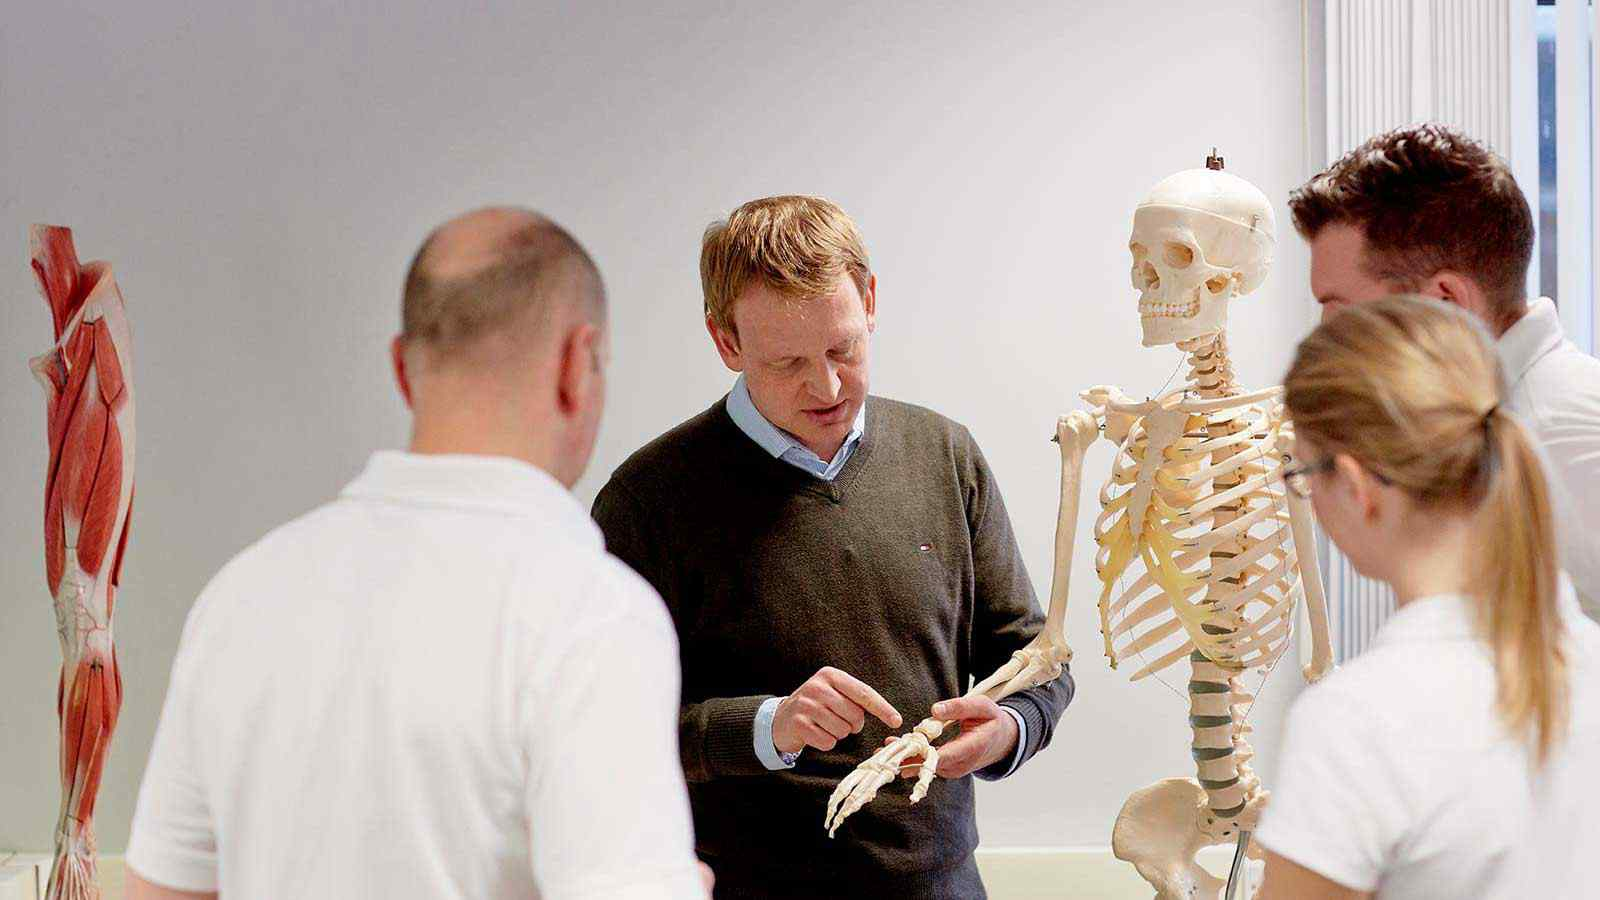 Lecturer using skeleton model in lecture to class